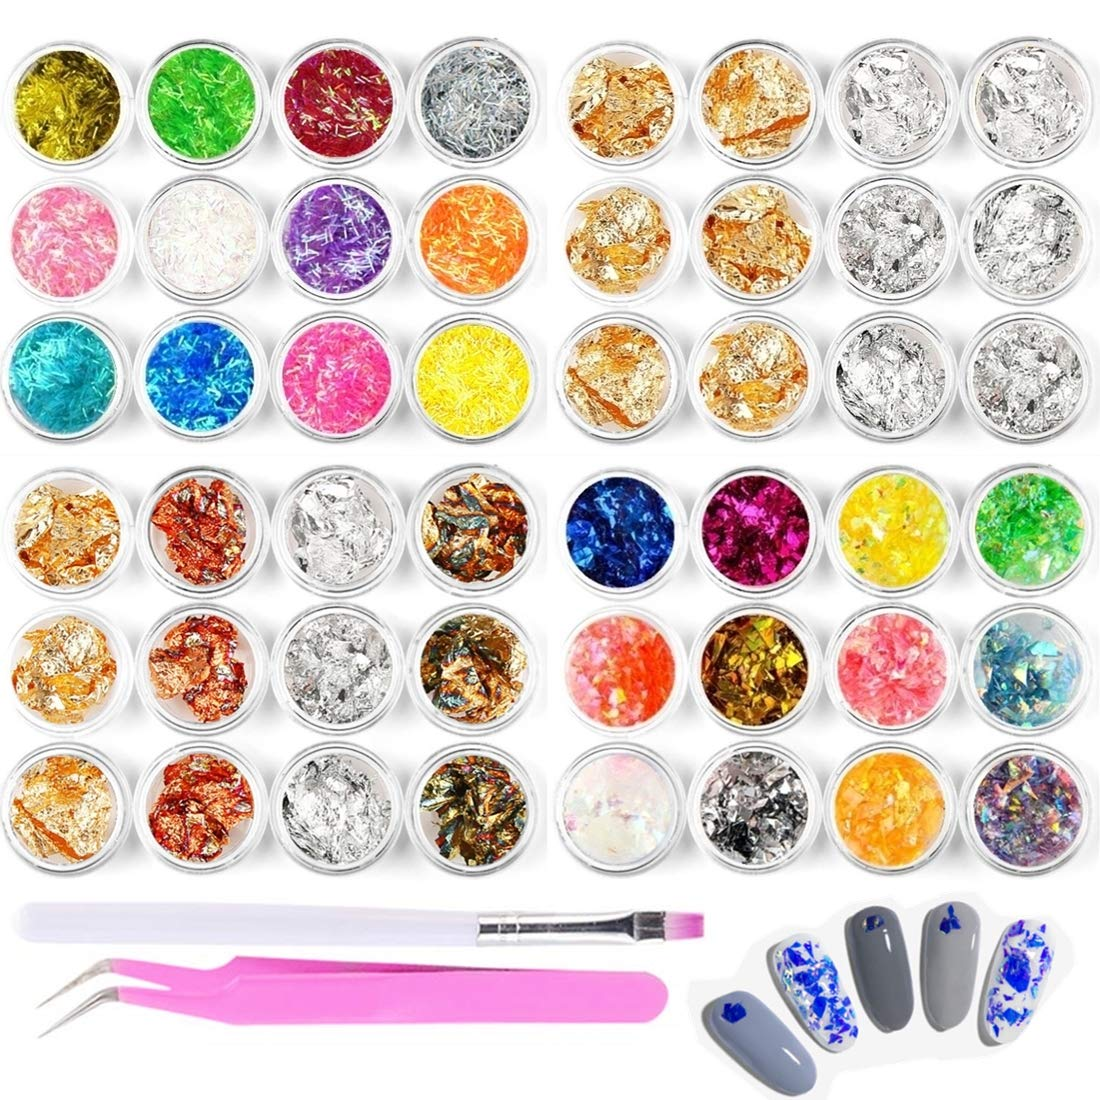 48pcs Nail Art Stickers & Decals Kit - Rose Gold Silver Nail Paillette Chip Foil Nail Glitter, Ice Mylar Shell Foil Slice, Ultra-thin Laser Sticker Nail Stripe Line, with a Tweezer and a Nail Brush